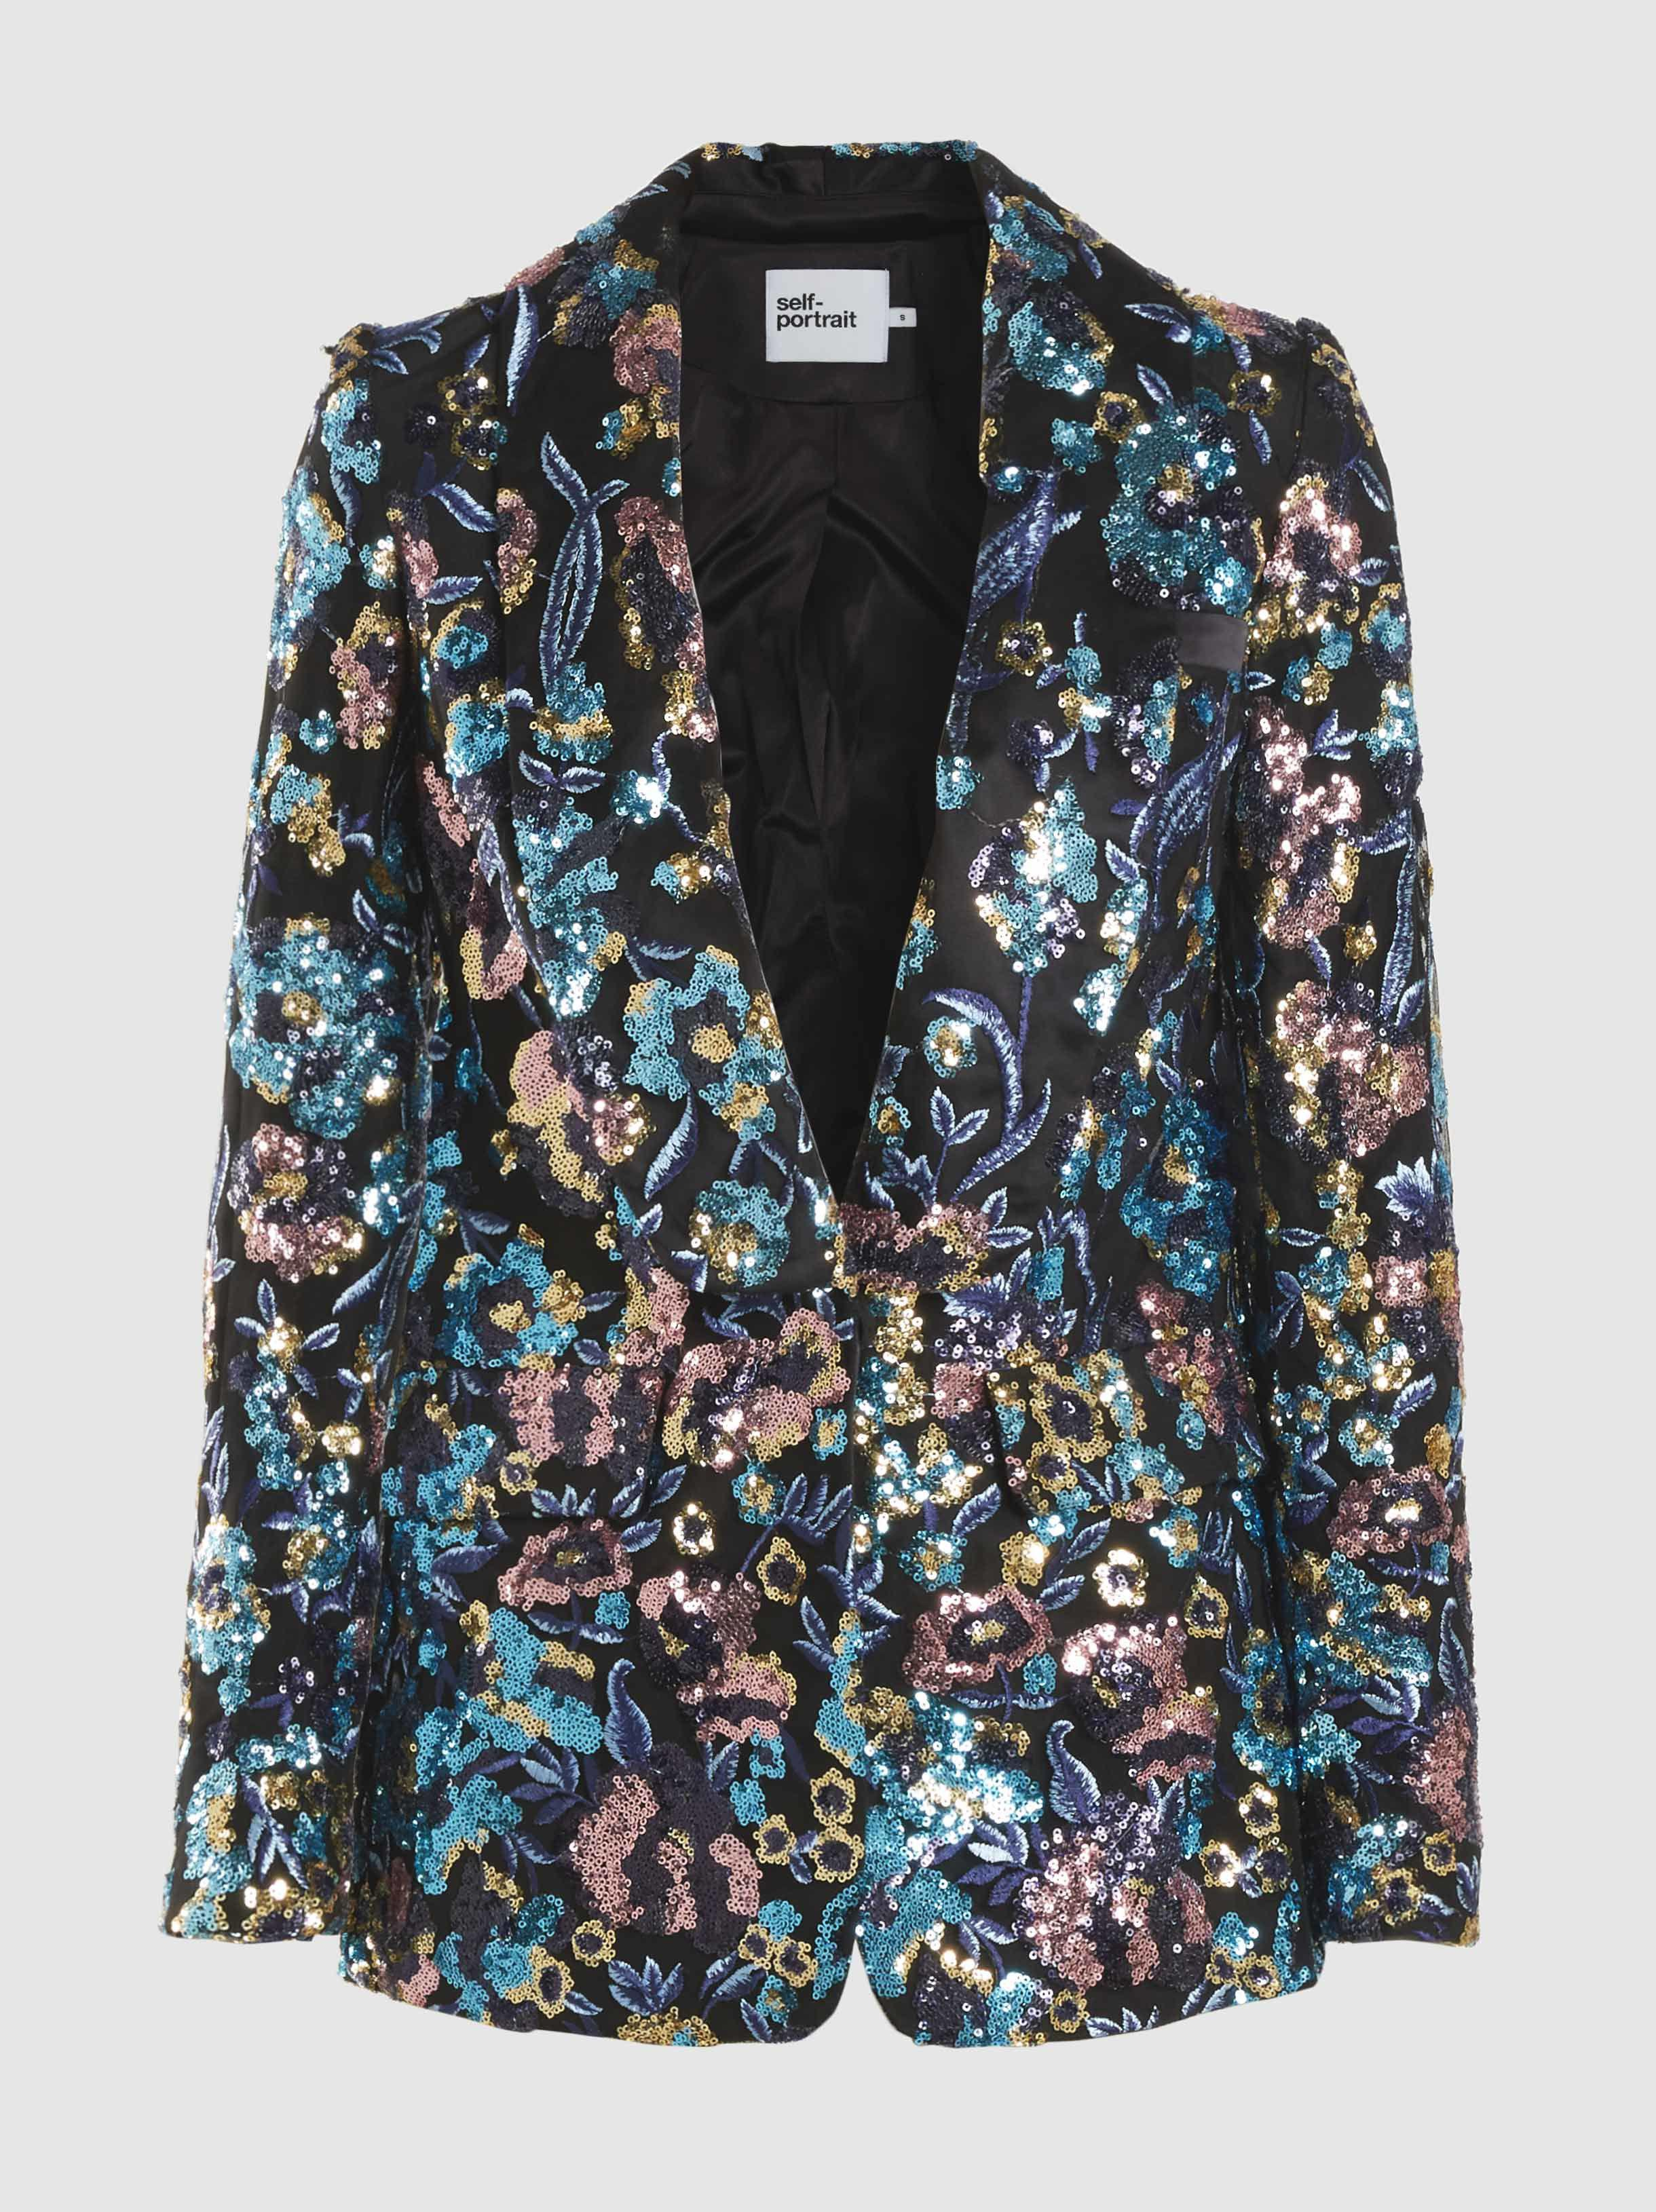 271bb2888848 Lyst - Self-Portrait Single Breasted Floral Sequinned Blazer in Black